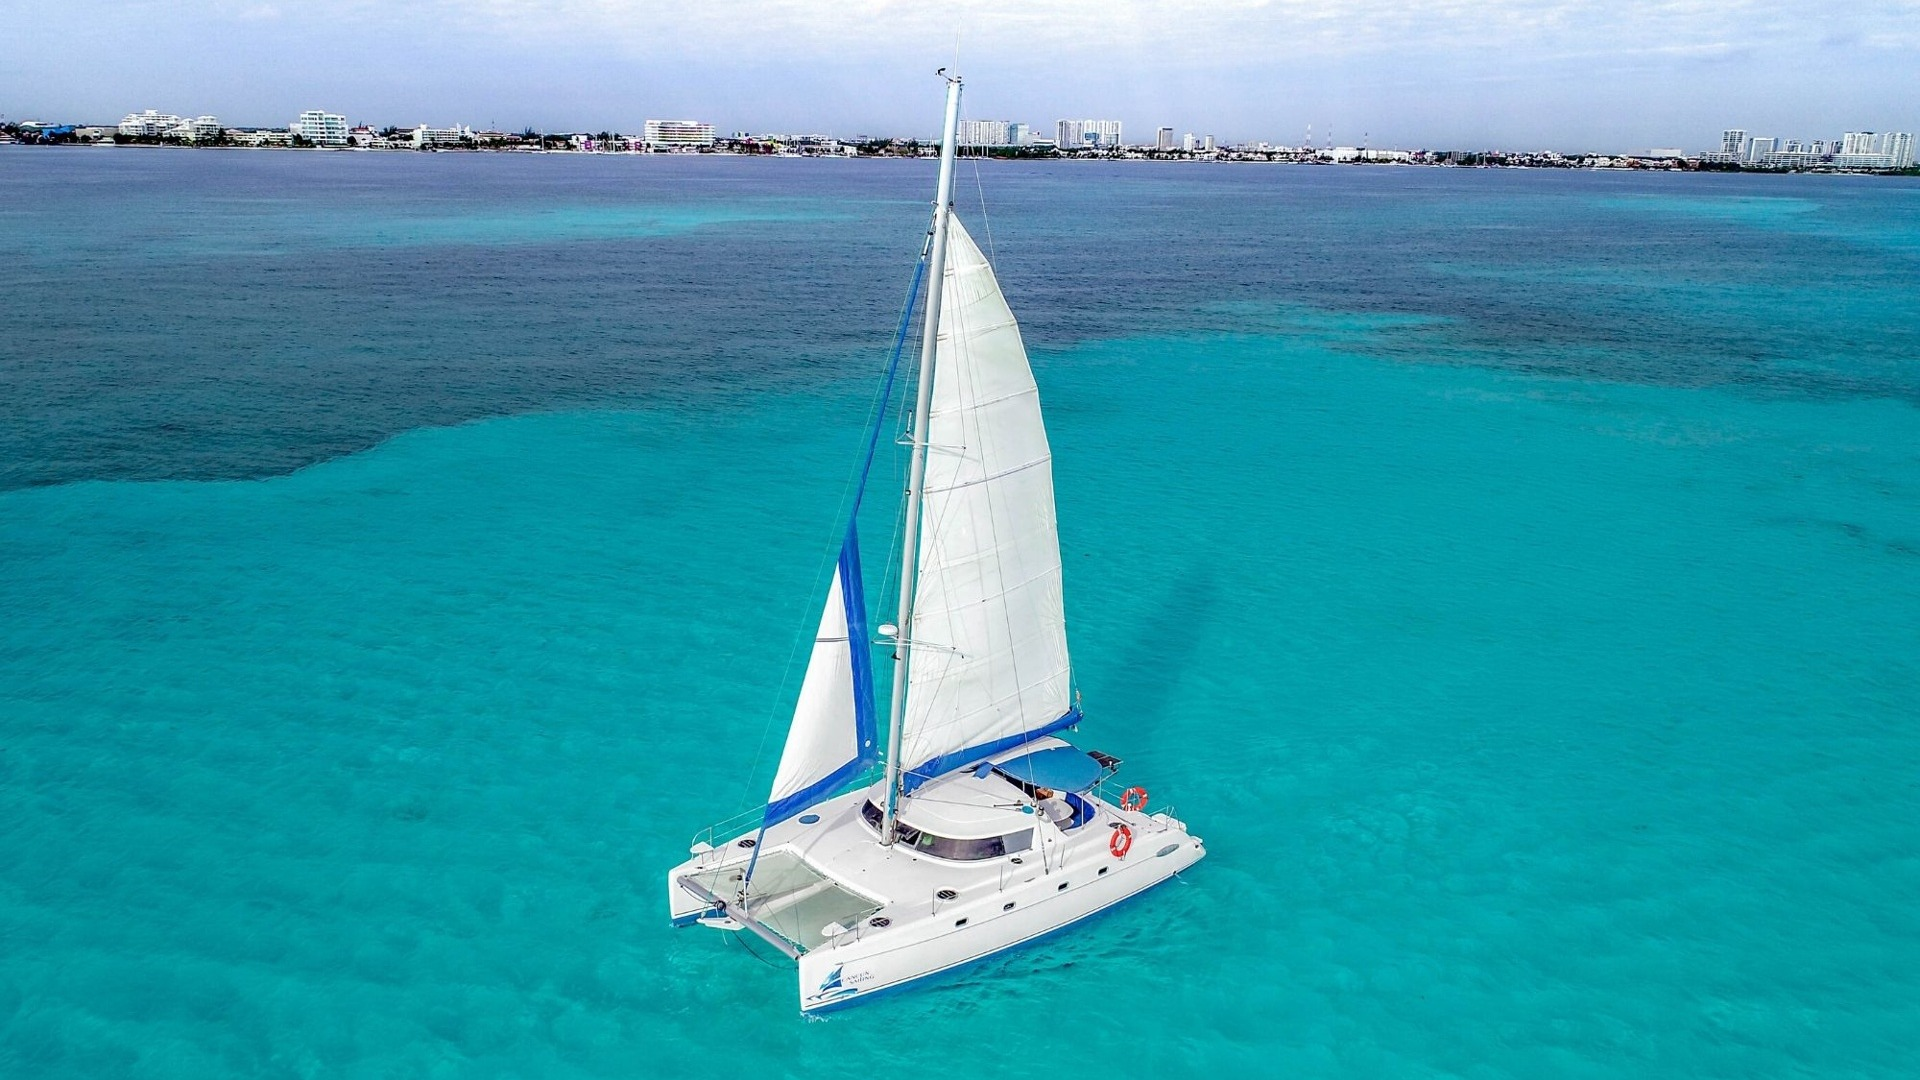 4 Vents - Isla Mujeres Catamaran Tour - Cancun Sailing